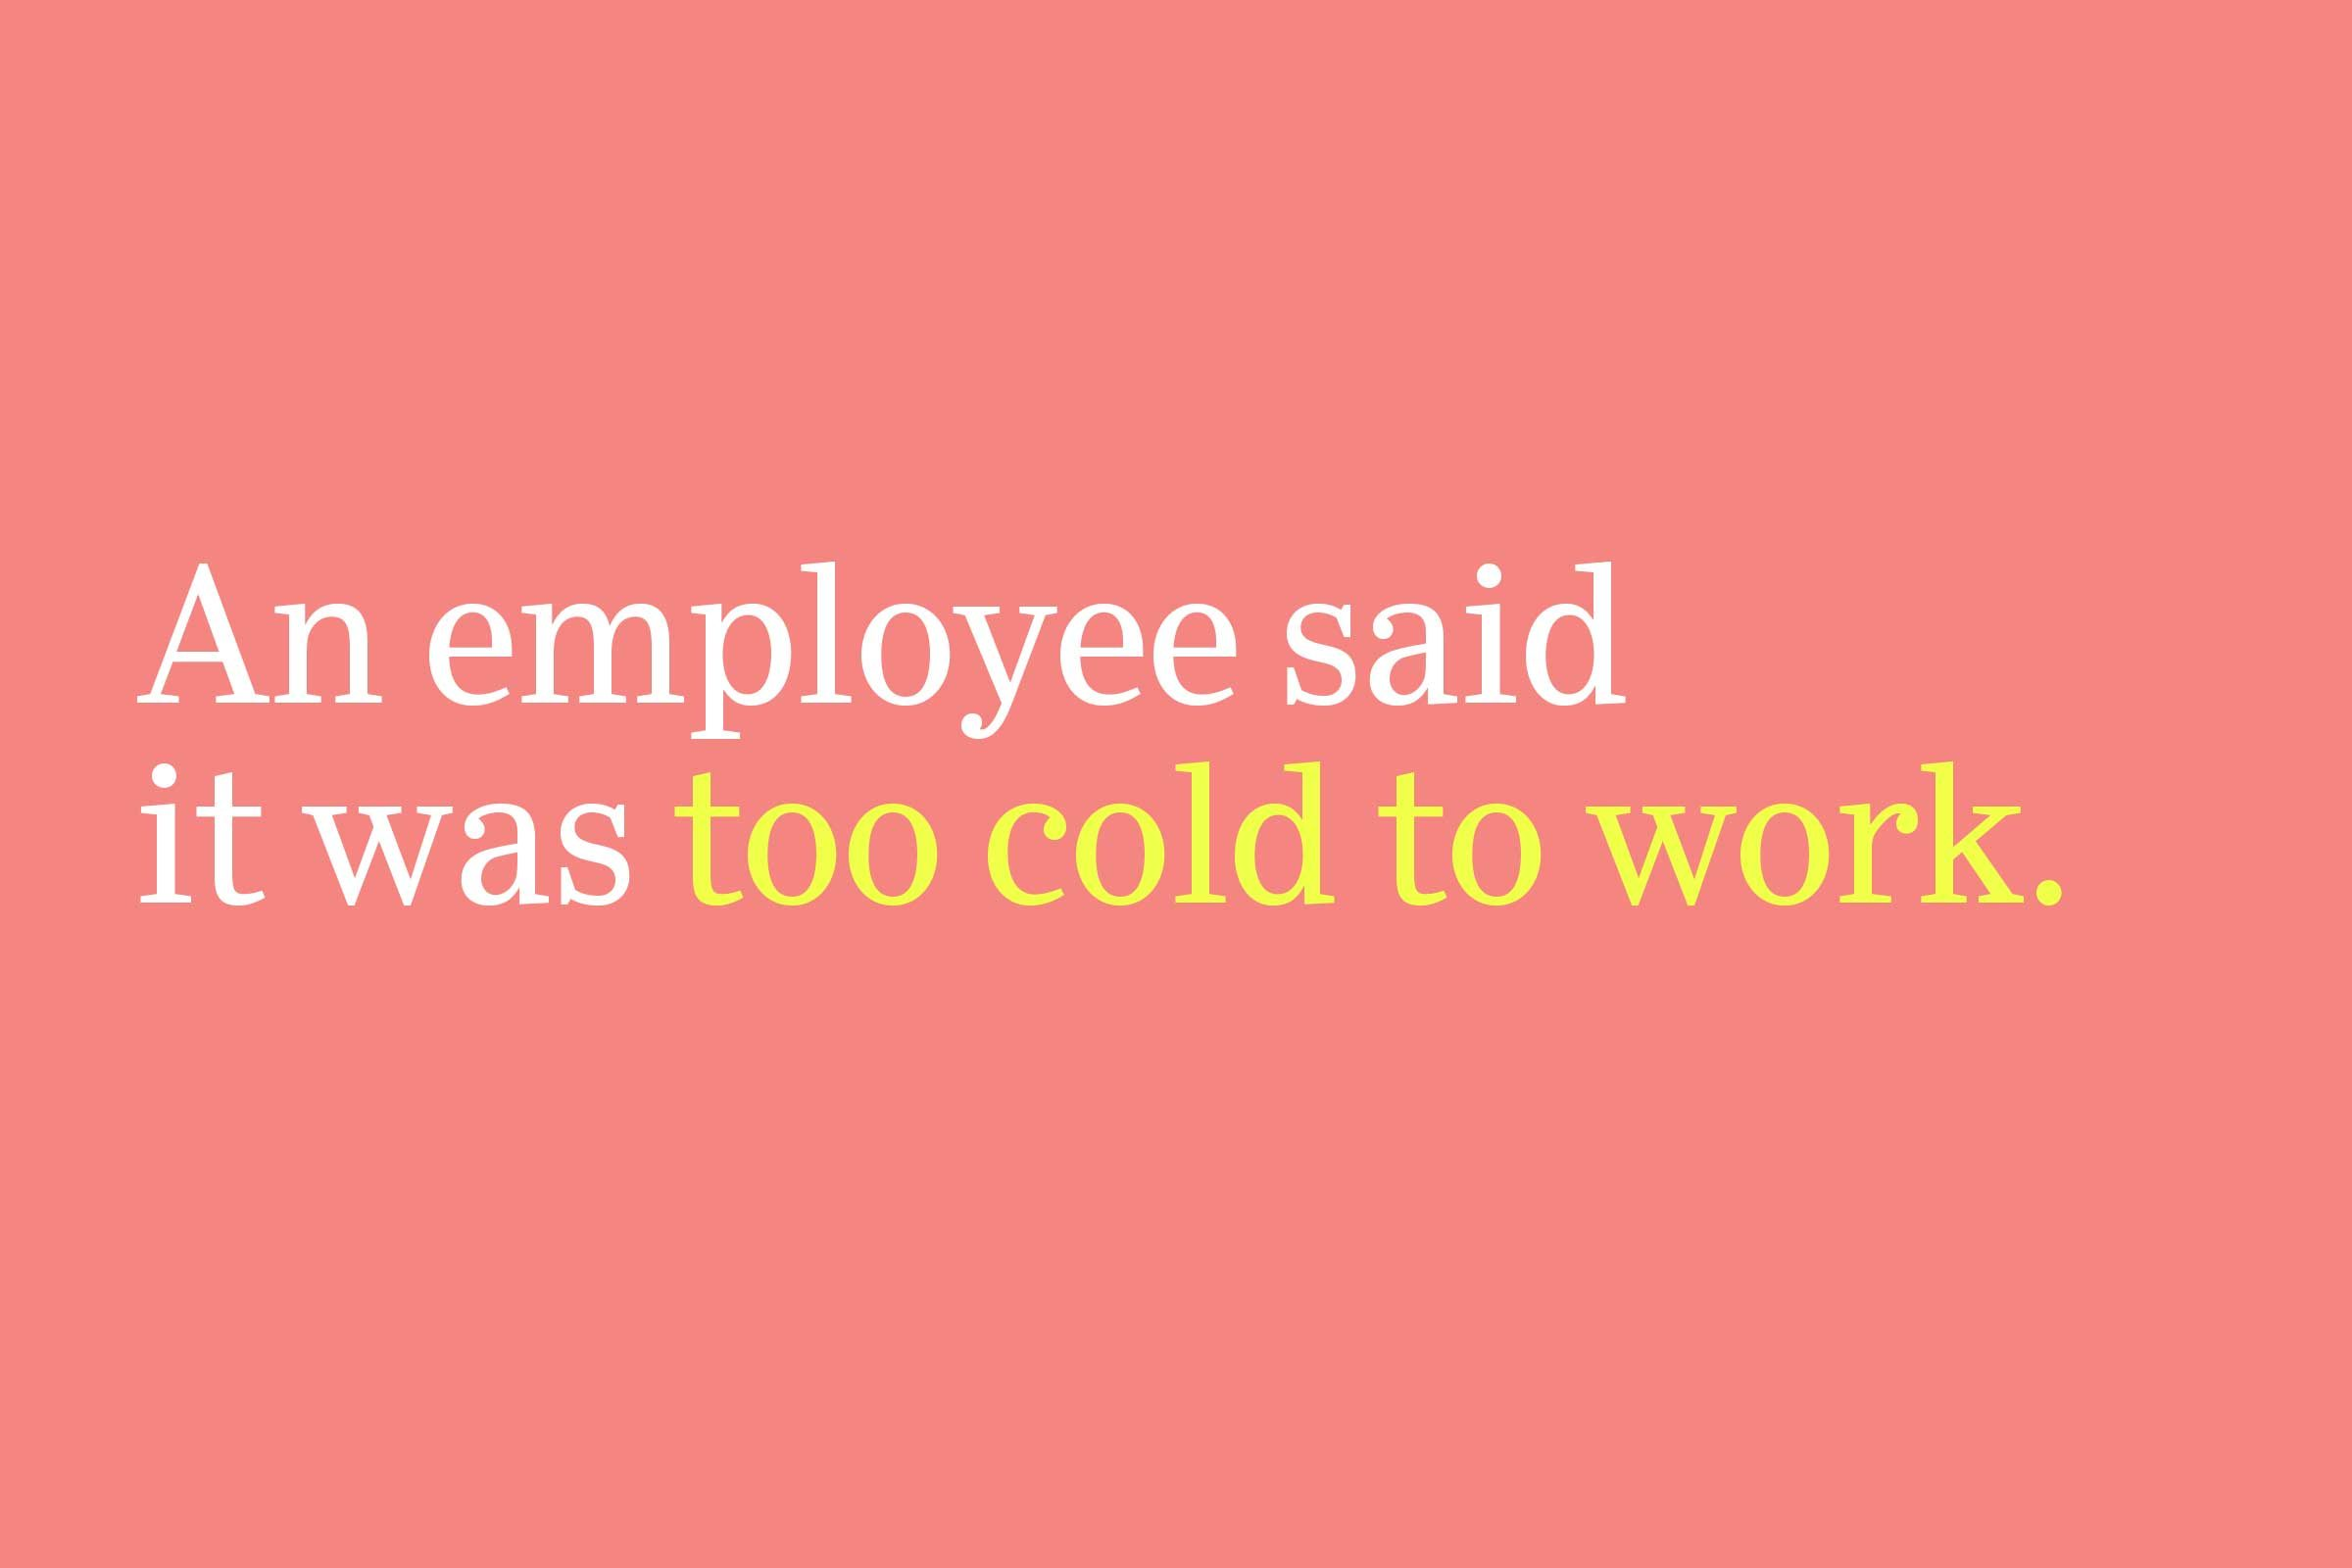 too cold to work